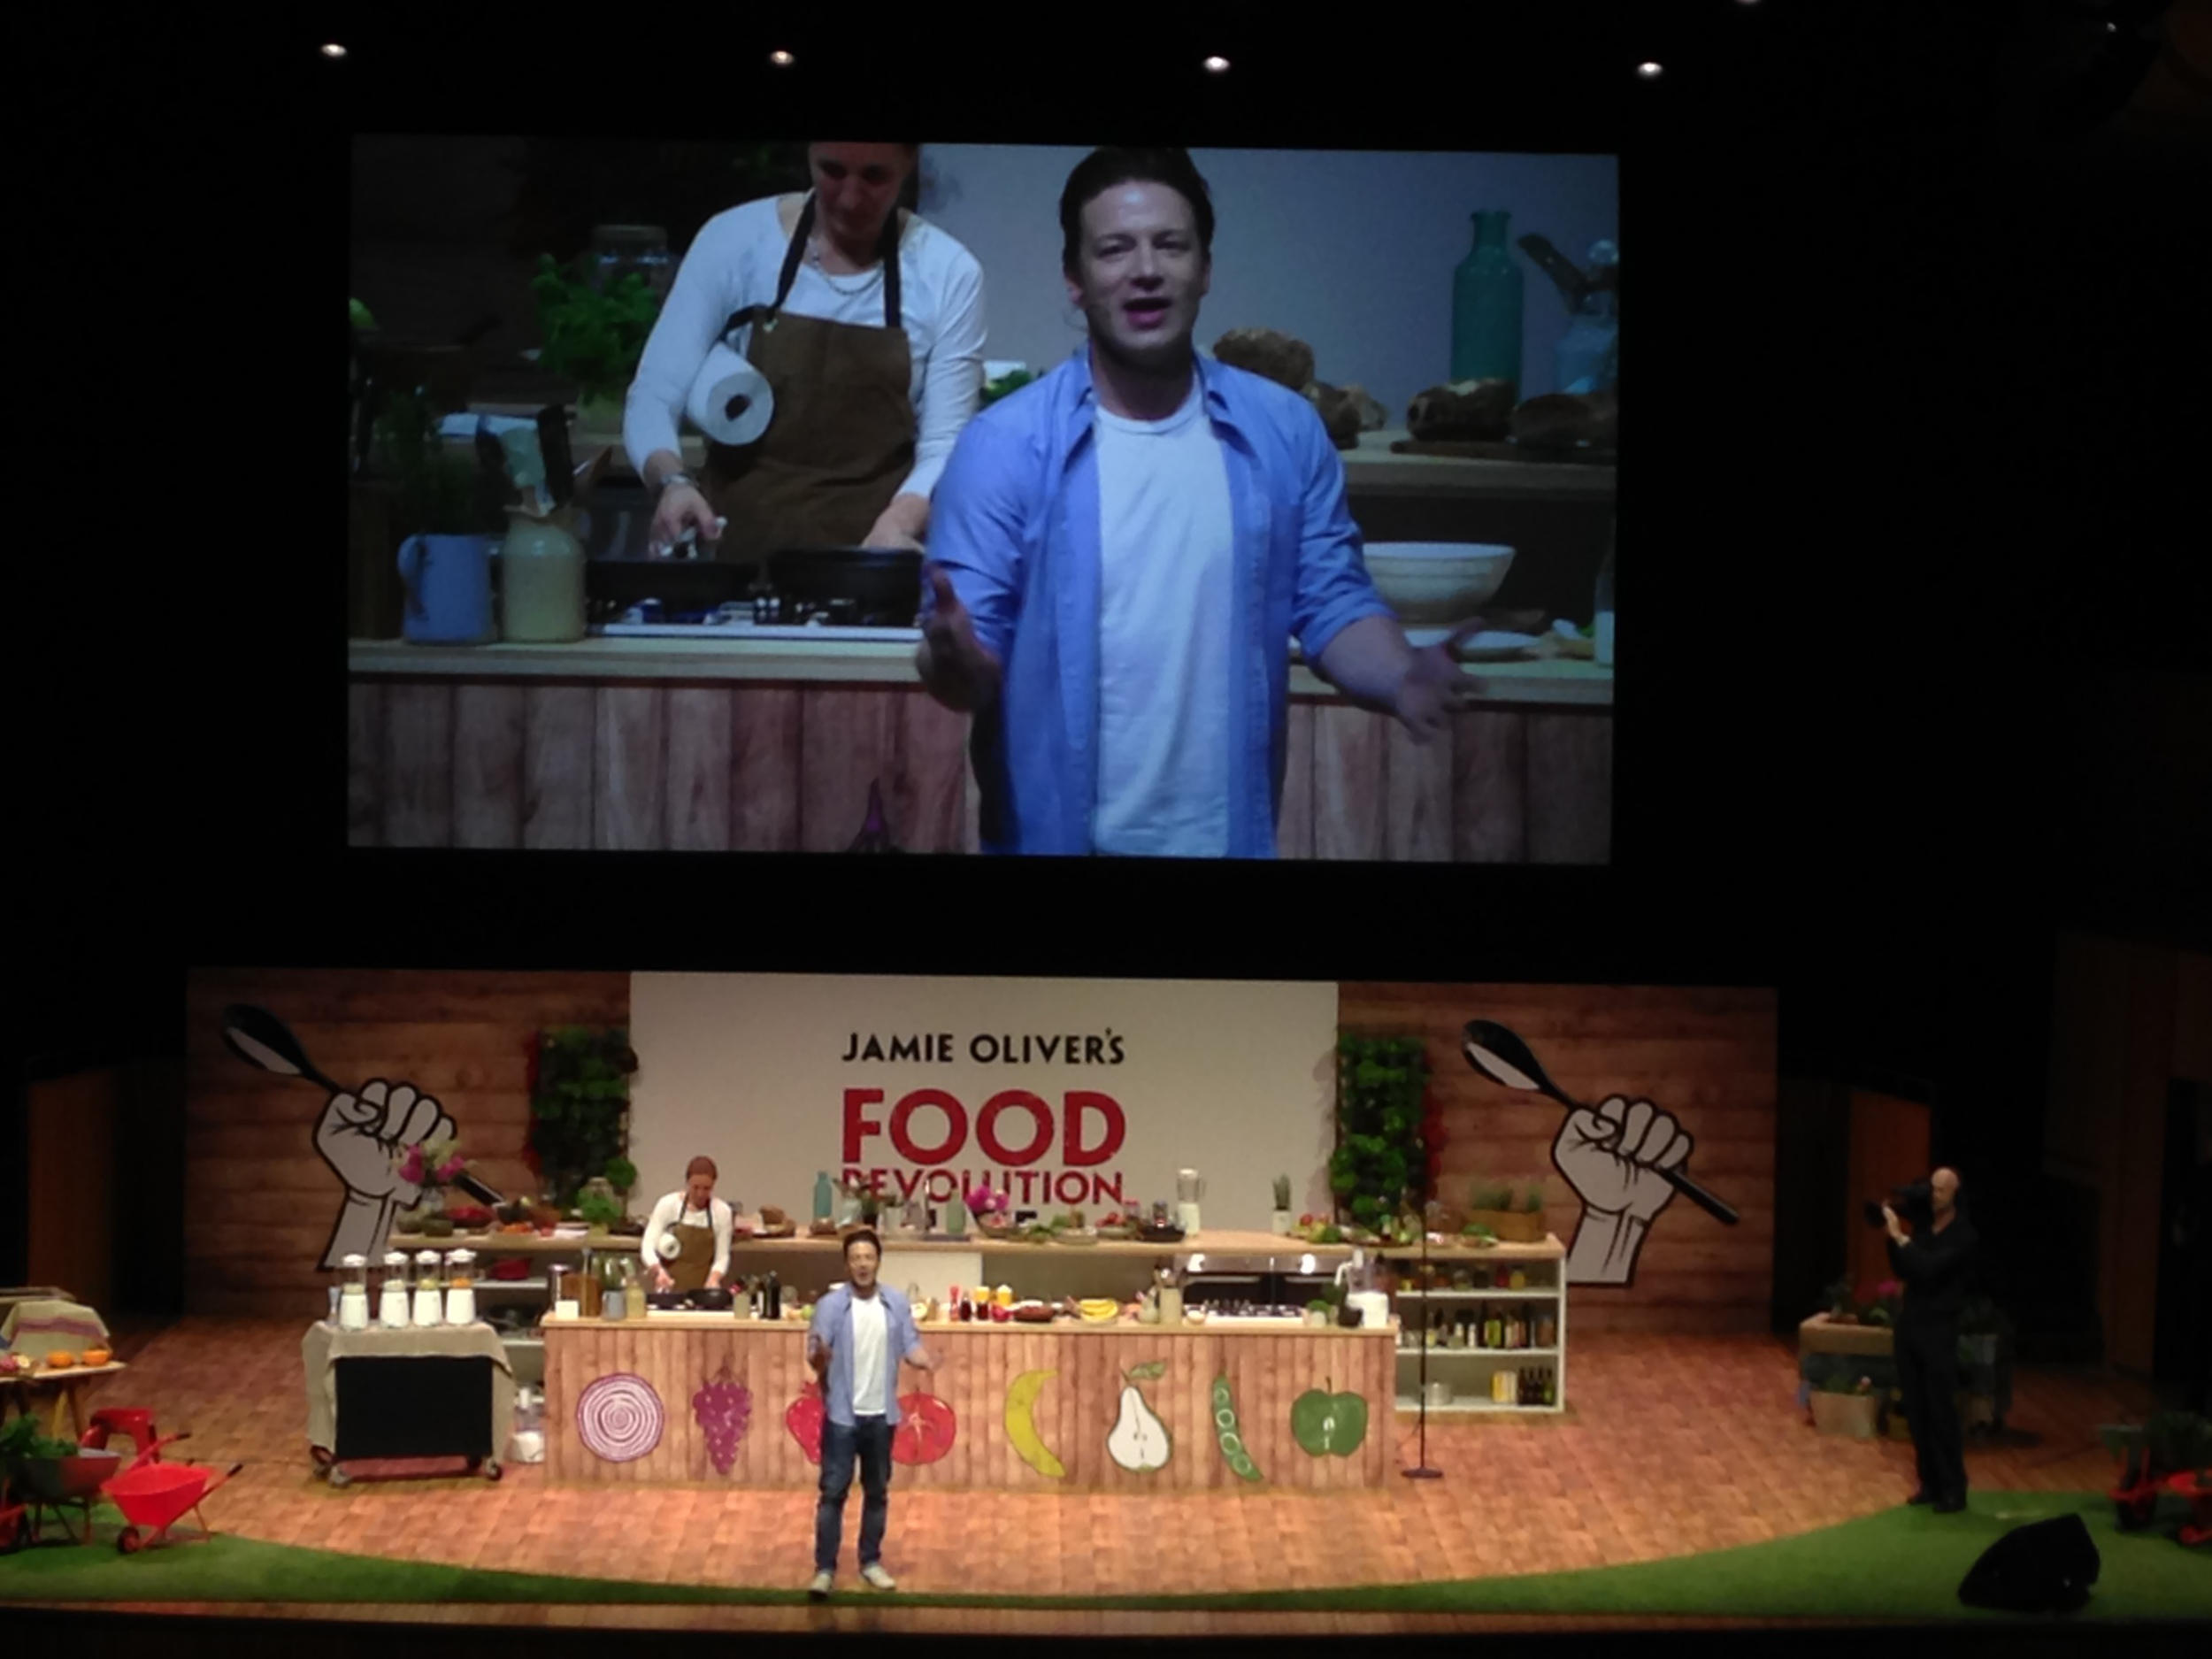 Jamie Oliver's Food Revolution Live, Sydney Opera House (March 29, 2015).